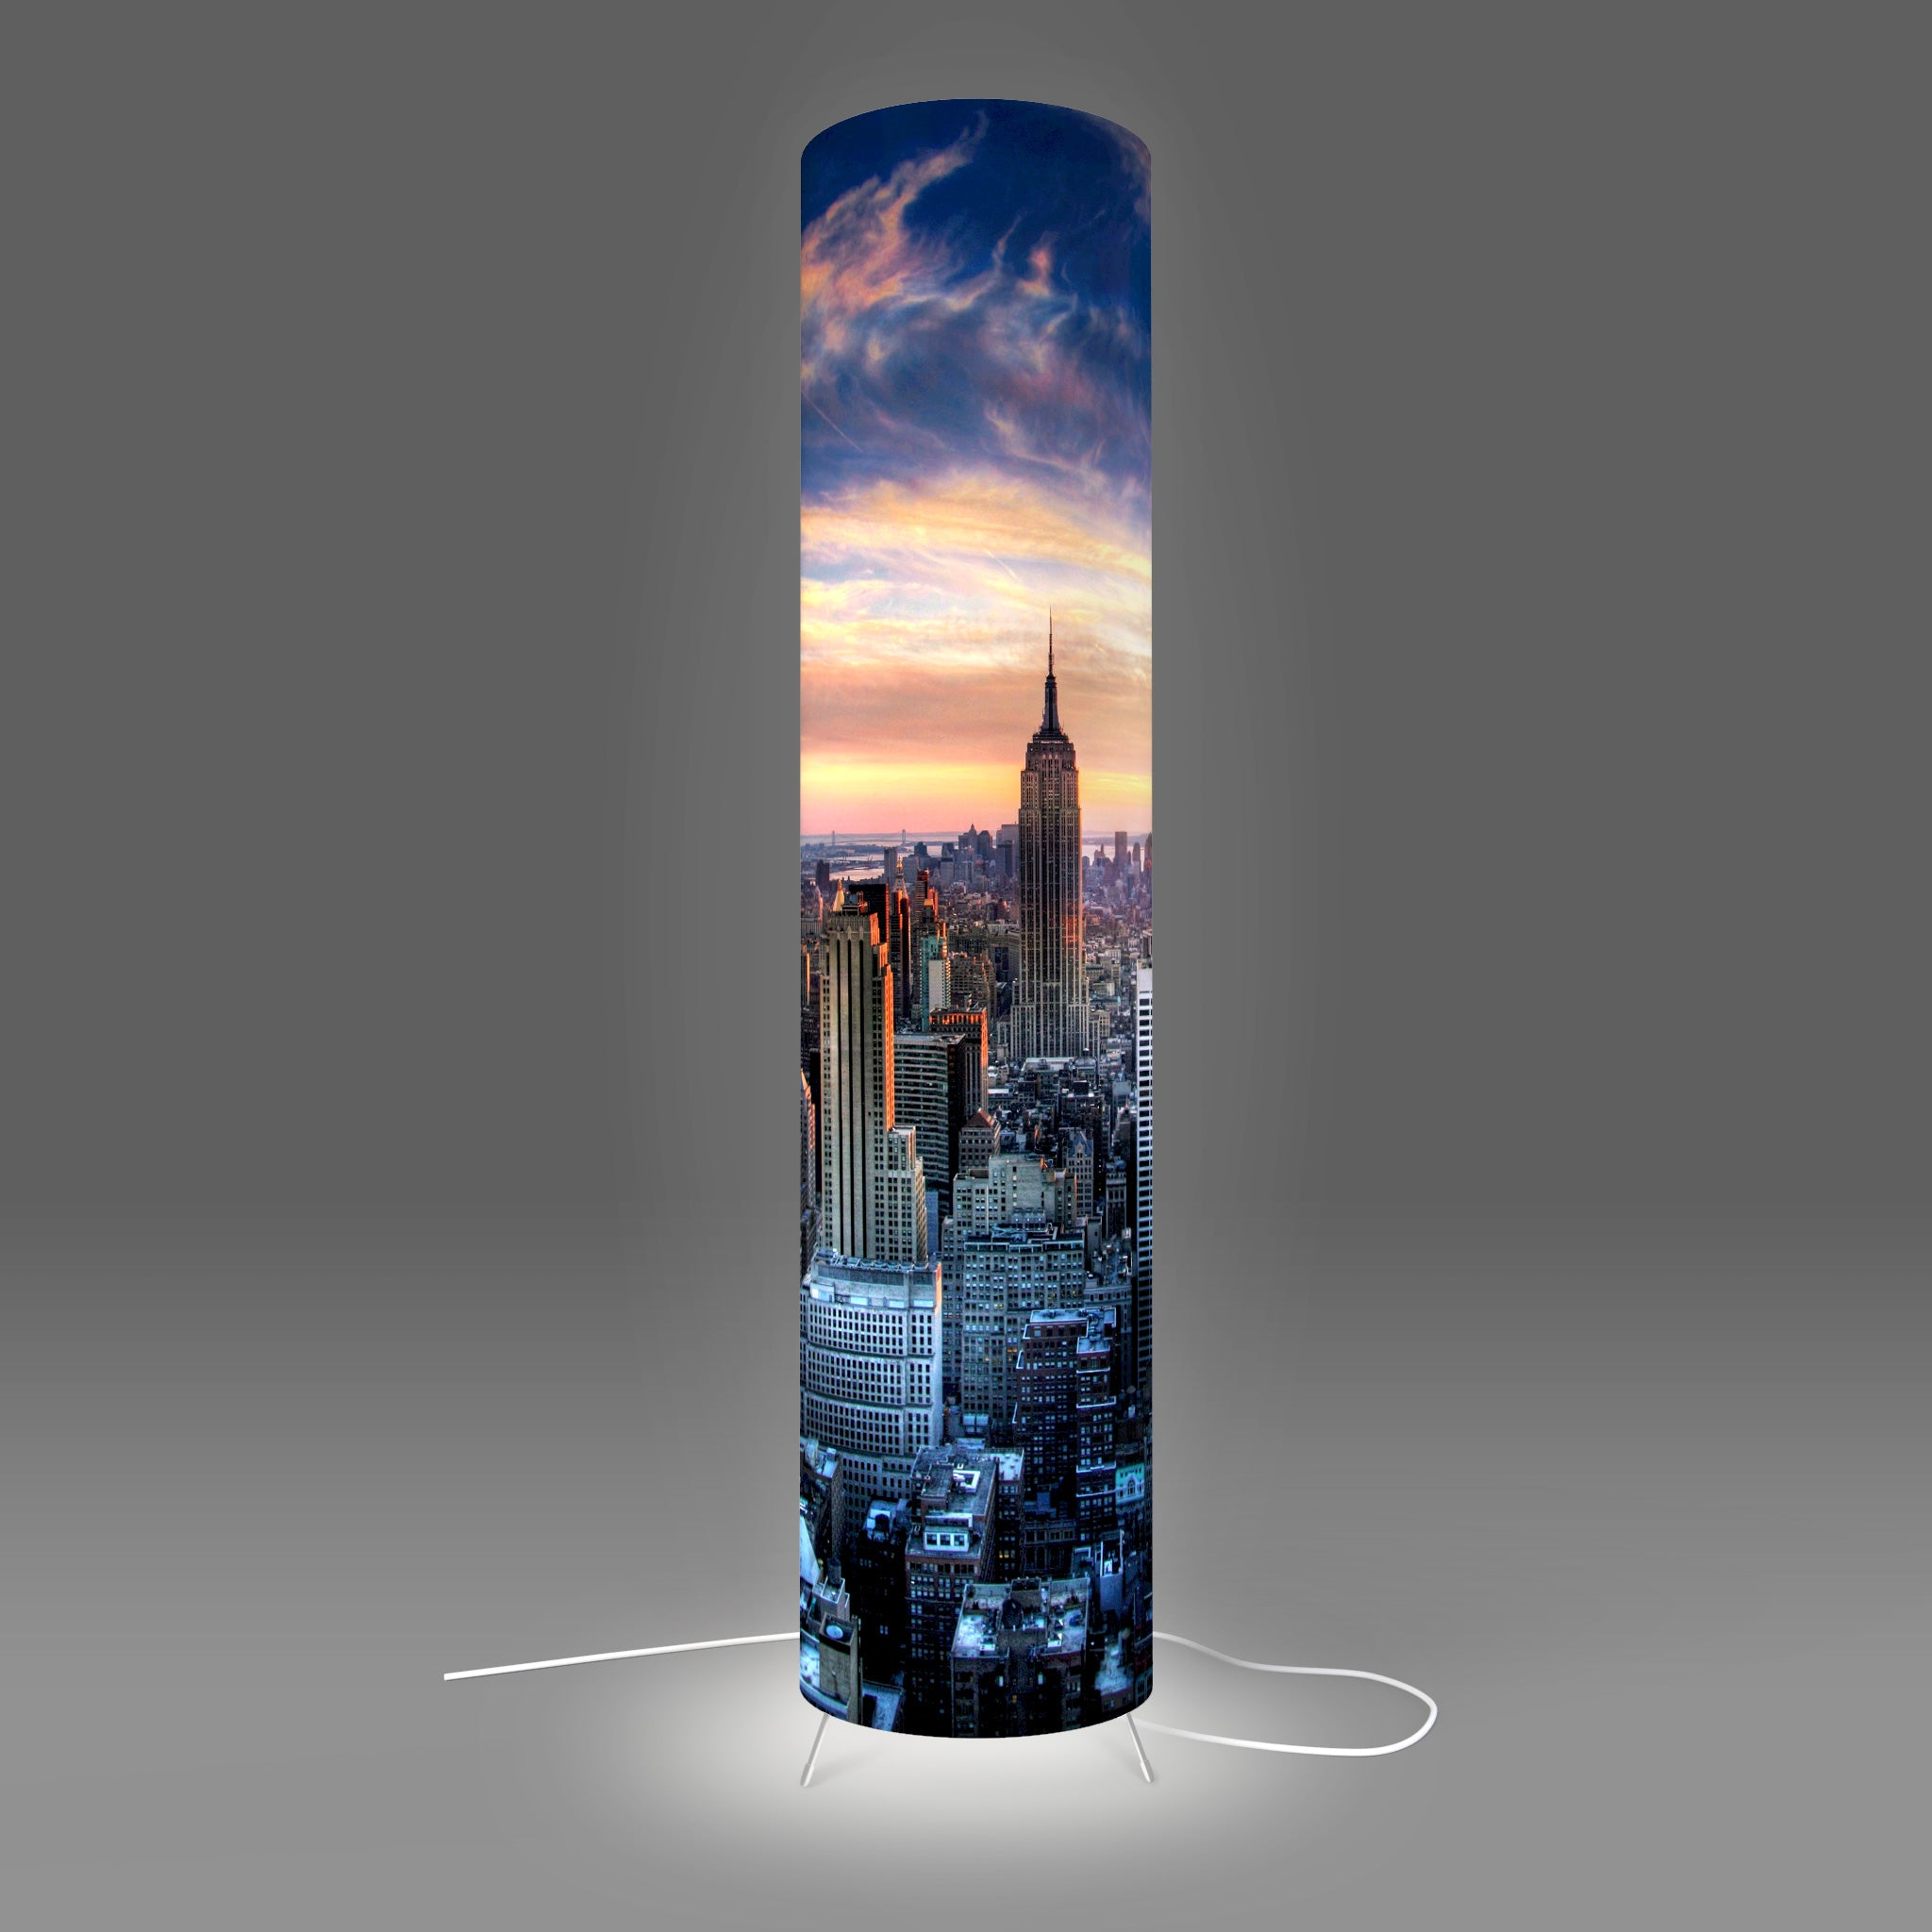 Modern Photo Lamp designed by Fotbee with image of Manhattan, New York